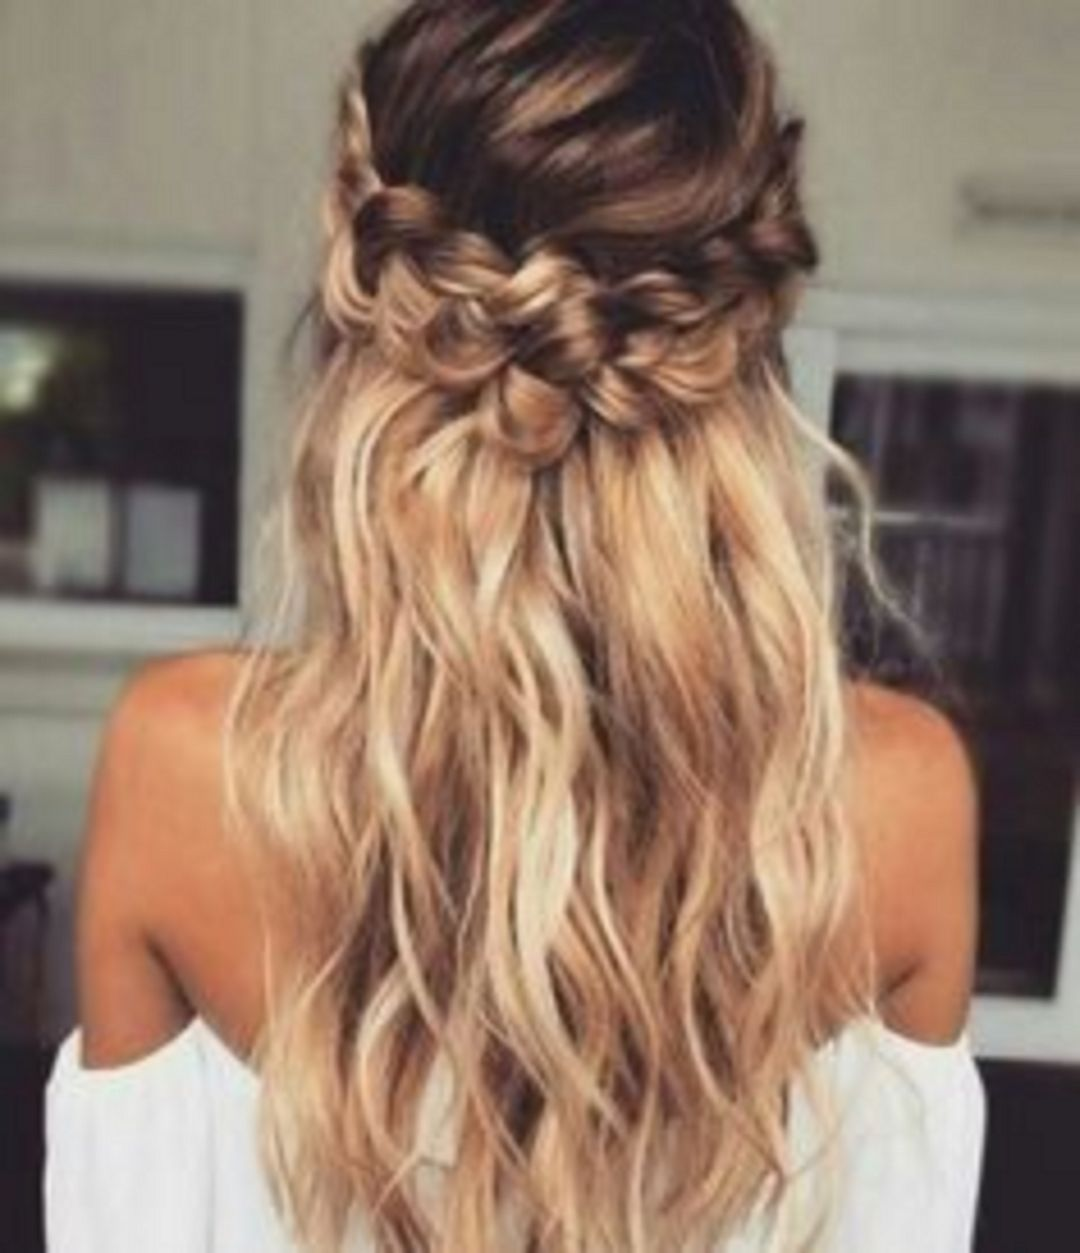 Pin by Cynthia Moreno-Robles on Cute hair<3 | Pinterest | Hair, Hair ...